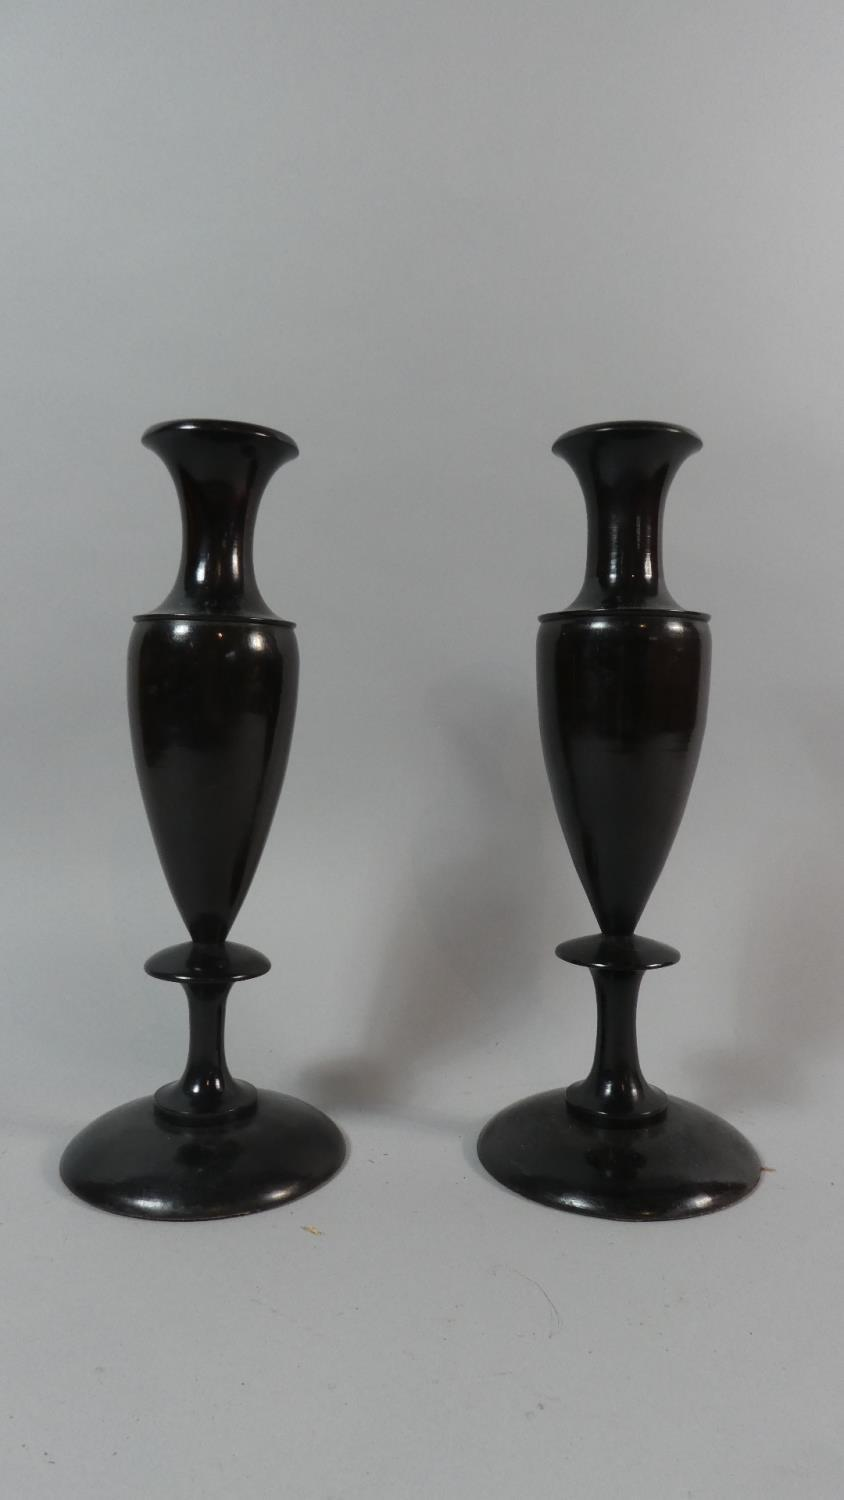 Lot 51 - A Pair of Early 20th Century French Art Deco Period Macassar Ebony Vases. 28cm High